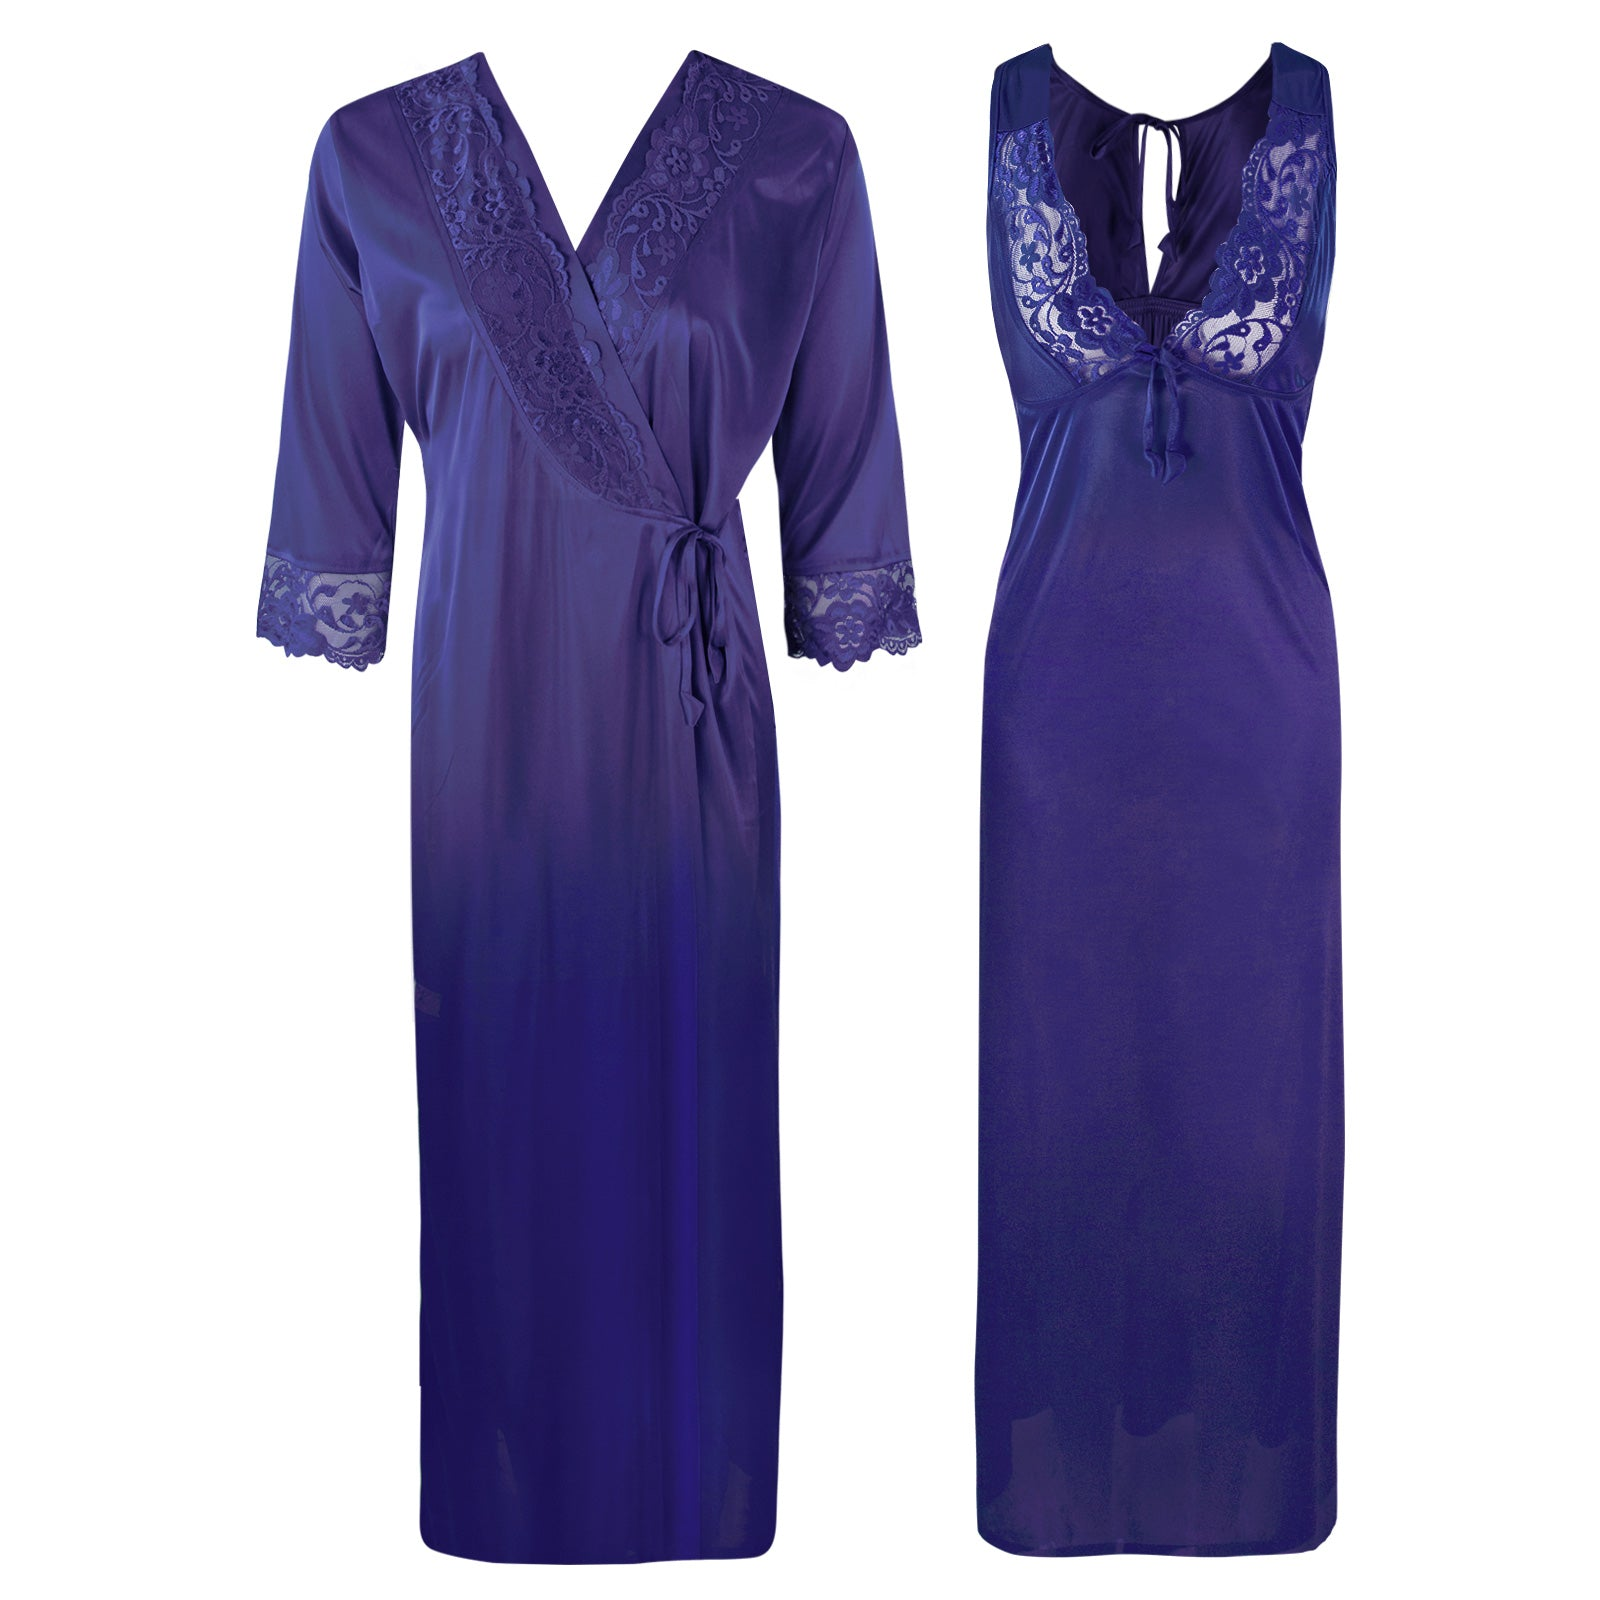 Sexy 2Pc Satin Lace Nightdress and Robe [colour]- Hautie UK, #Nightfashion | #Underfashion  SIZE 8 10 12 14 16 NAVY